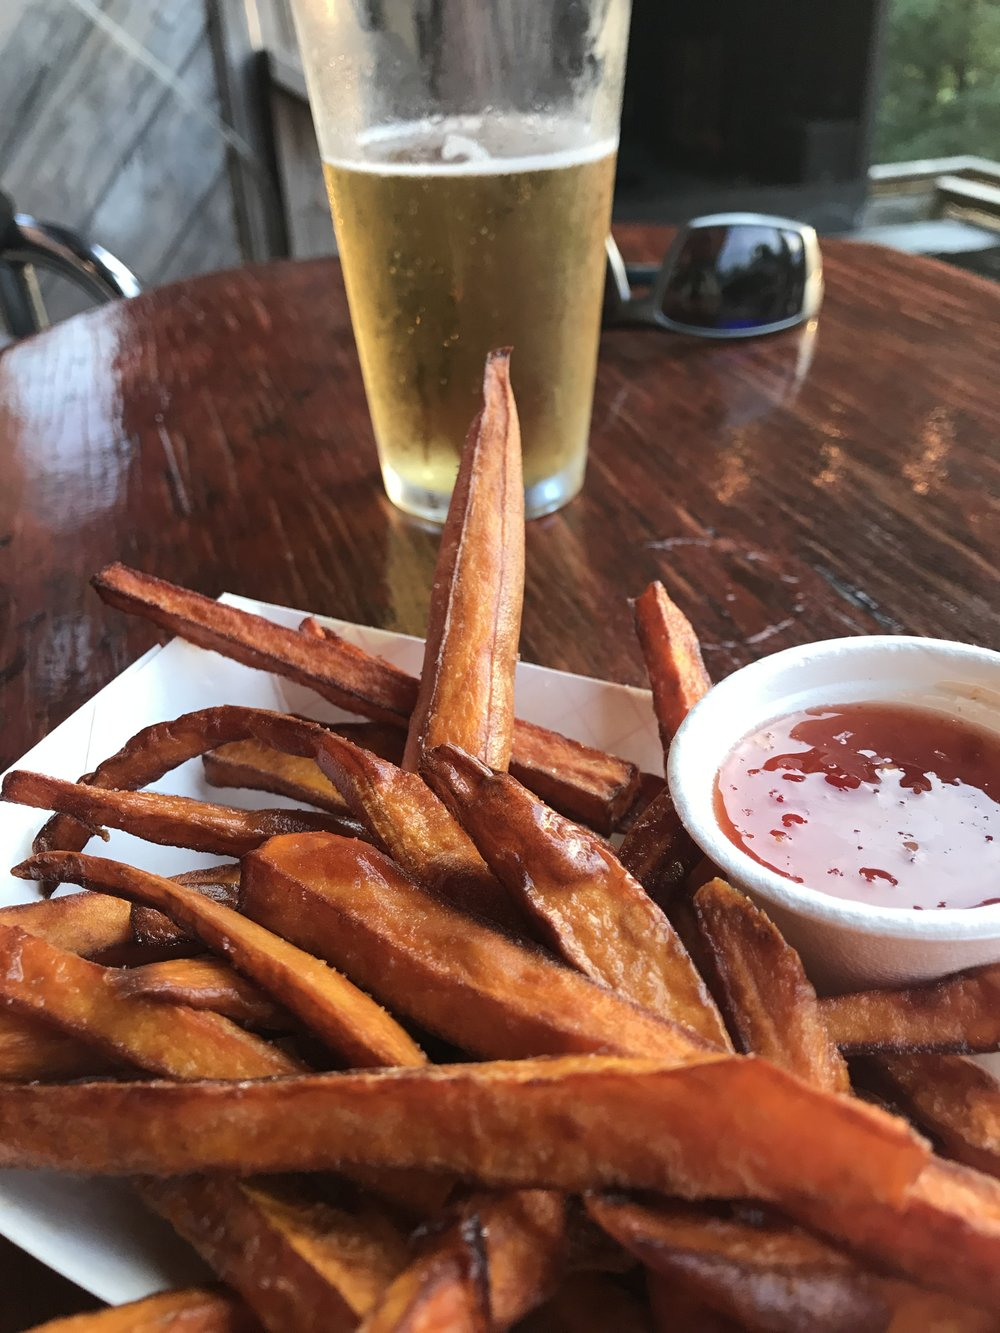 Not feeling chips and salsa at the Burrito Bar? Sweet potato fries all the way.